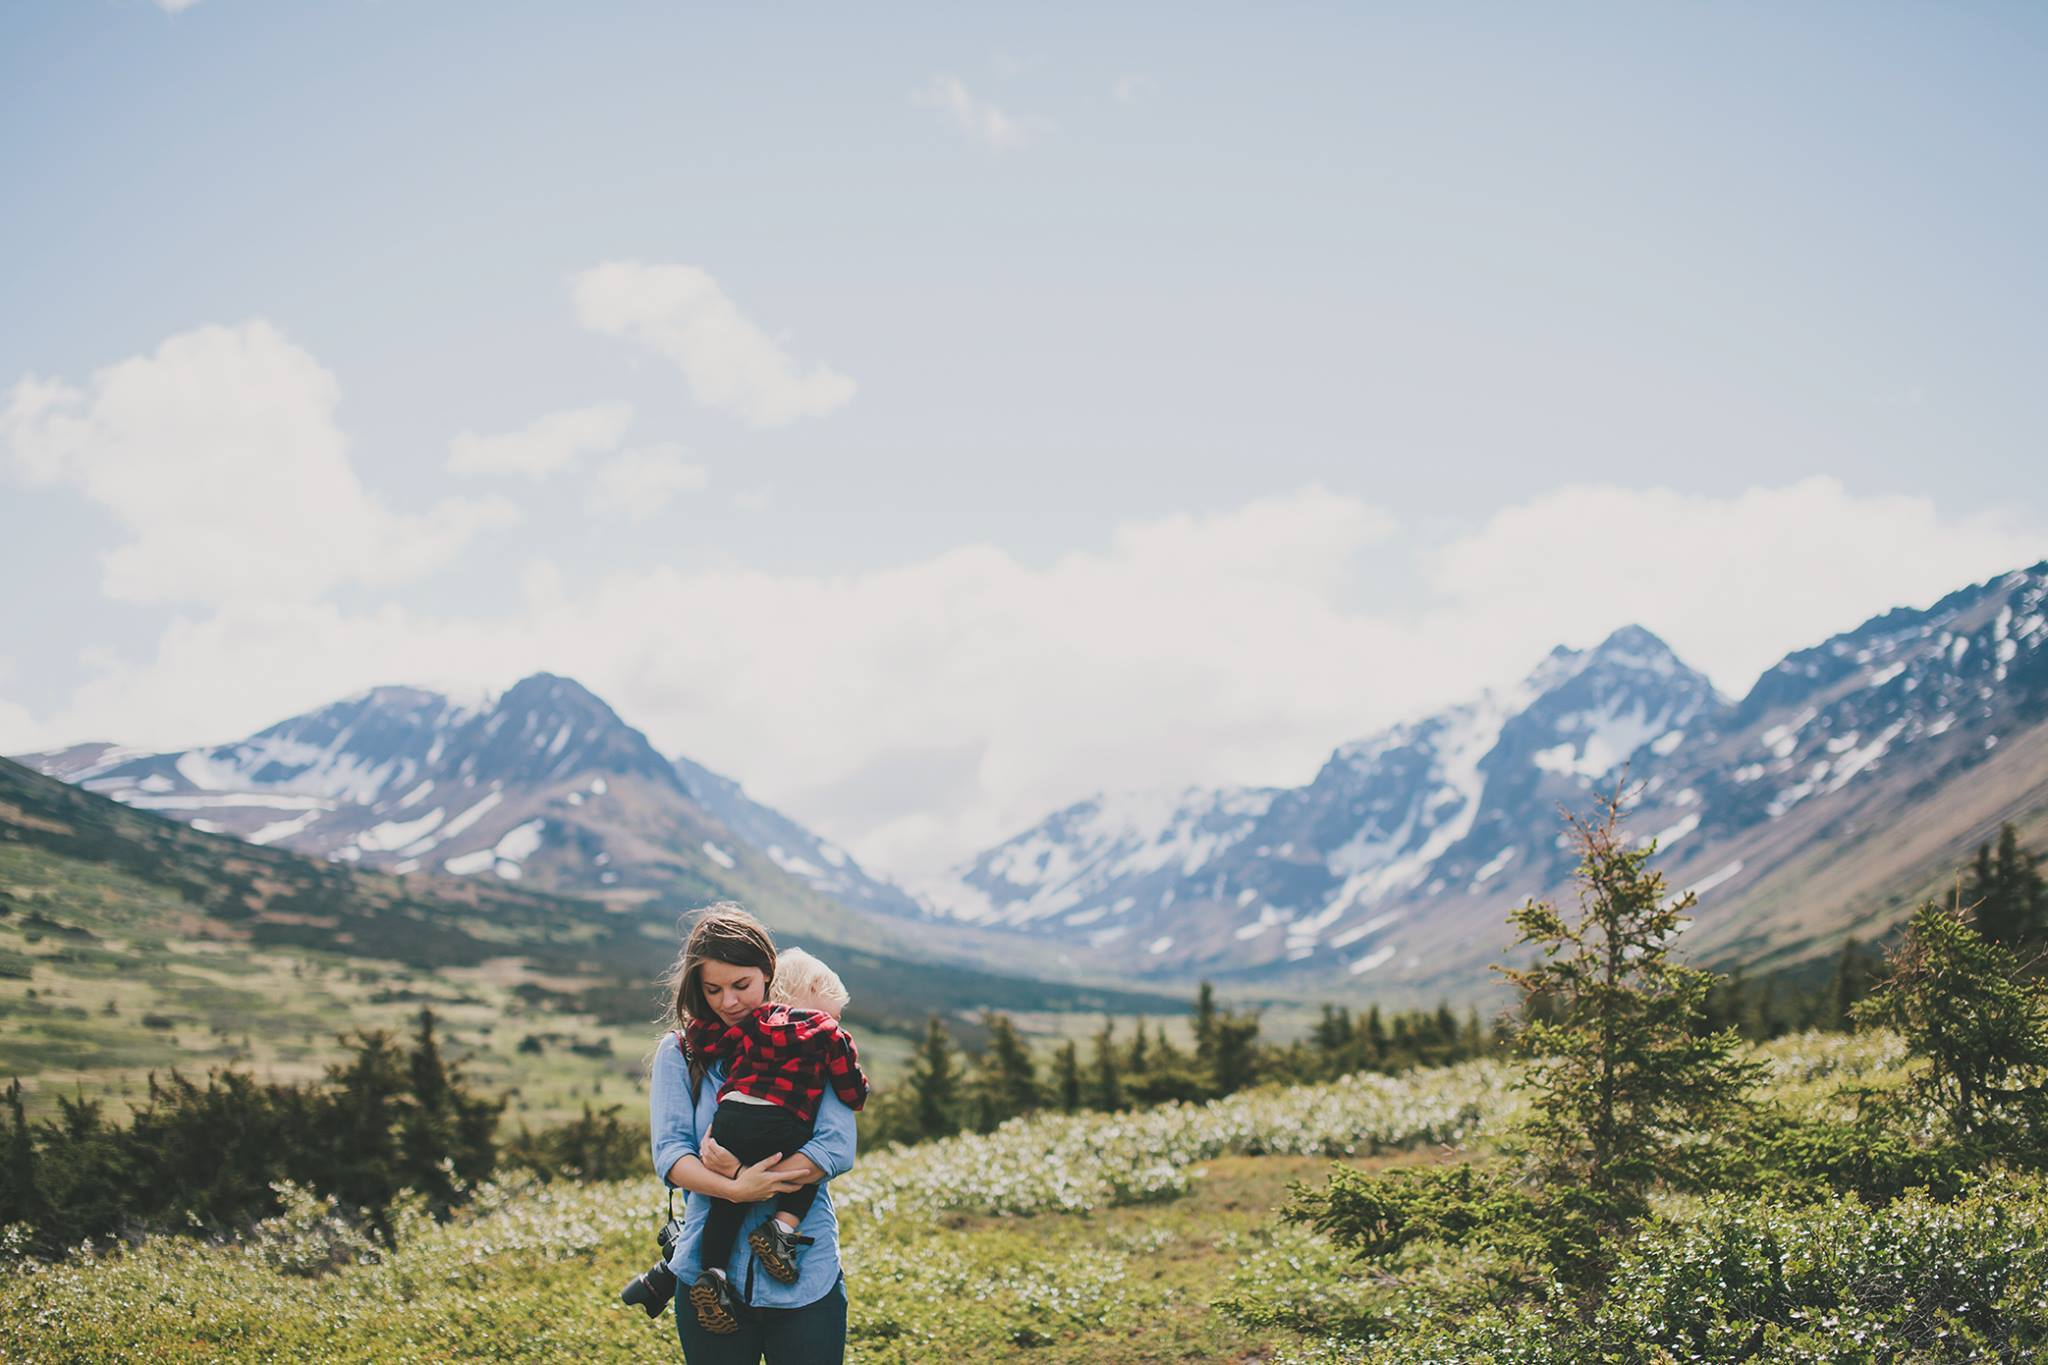 Photo by Grace Adams of Jess Hunter, Anchorage Alaska wedding & elopement photographer, Chugach mountain range, Anchorage mountain portrait sesssion, adventure photography, elopement locations in Alaska